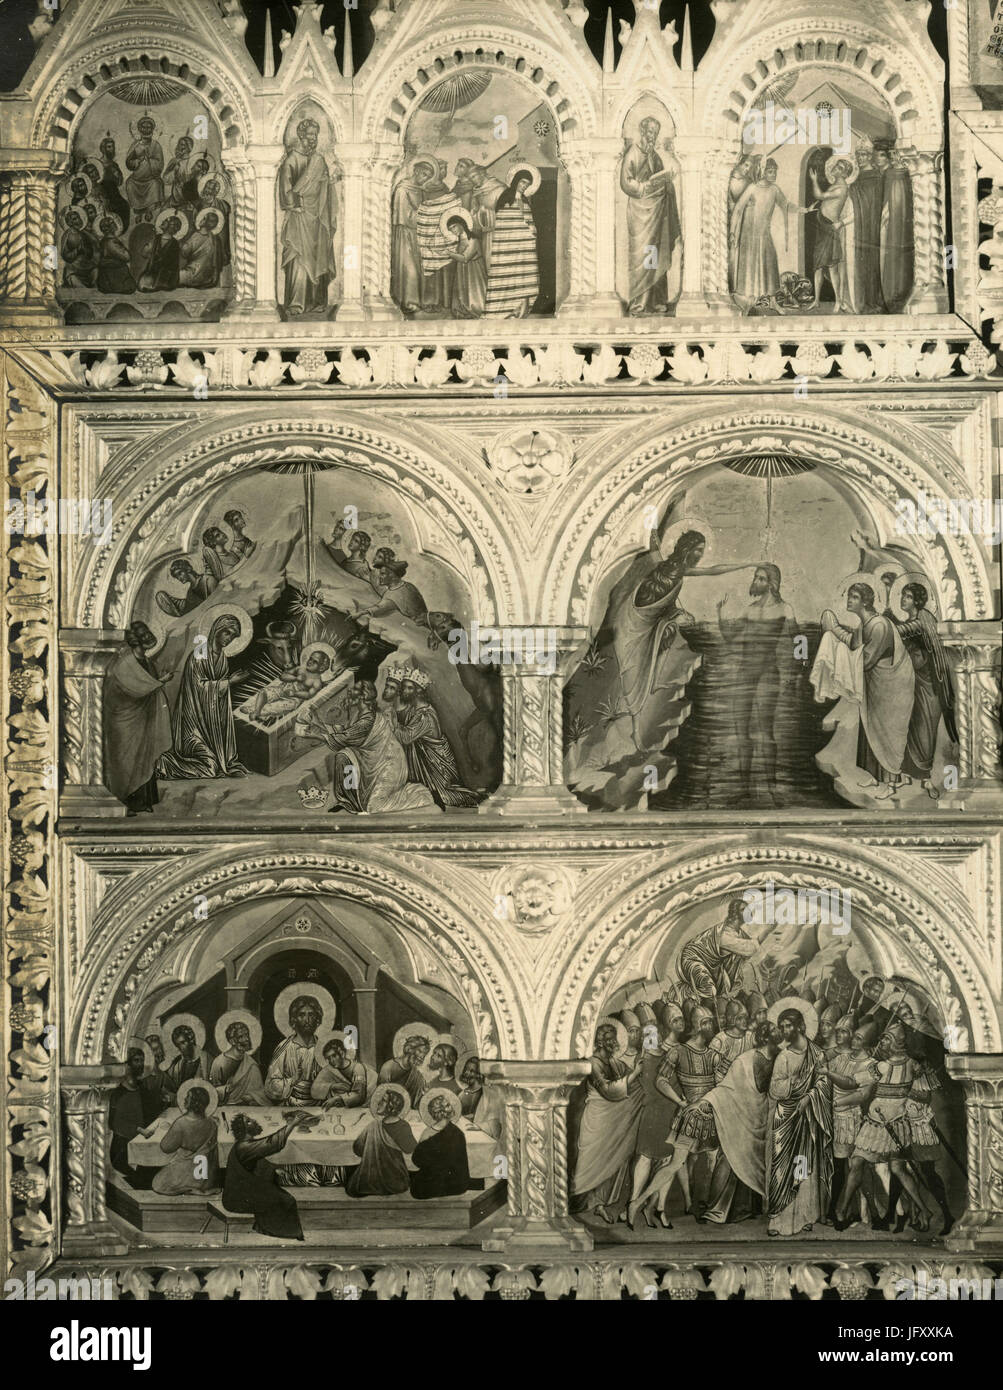 Polyptych by Stefano da Sant'Agnese, Accademia 21, Venice, Italy - Stock Image